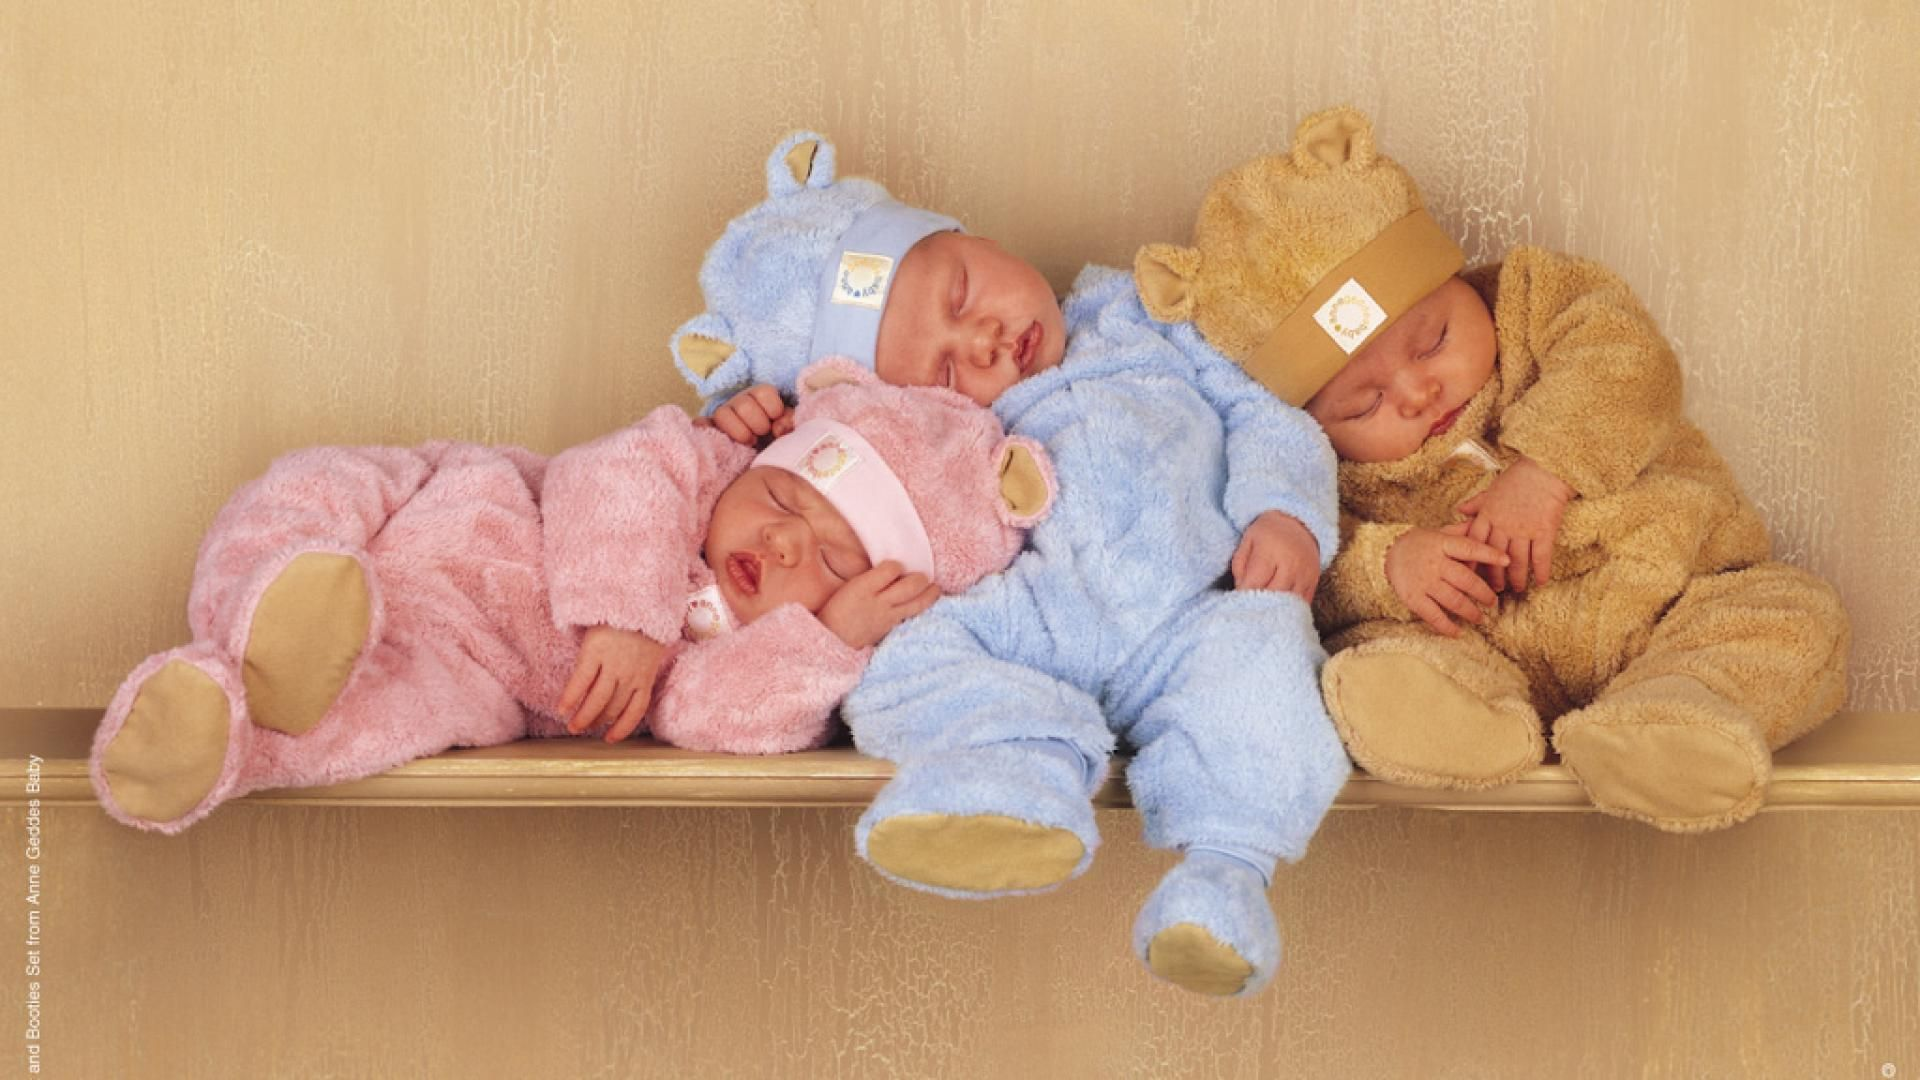 Cute Baby Sleep Pictures Hd Wallpaper Of Baby 8211 Hdwallpaper2013 Cute Baby Pictures Cute Baby Sleeping Anne Geddes